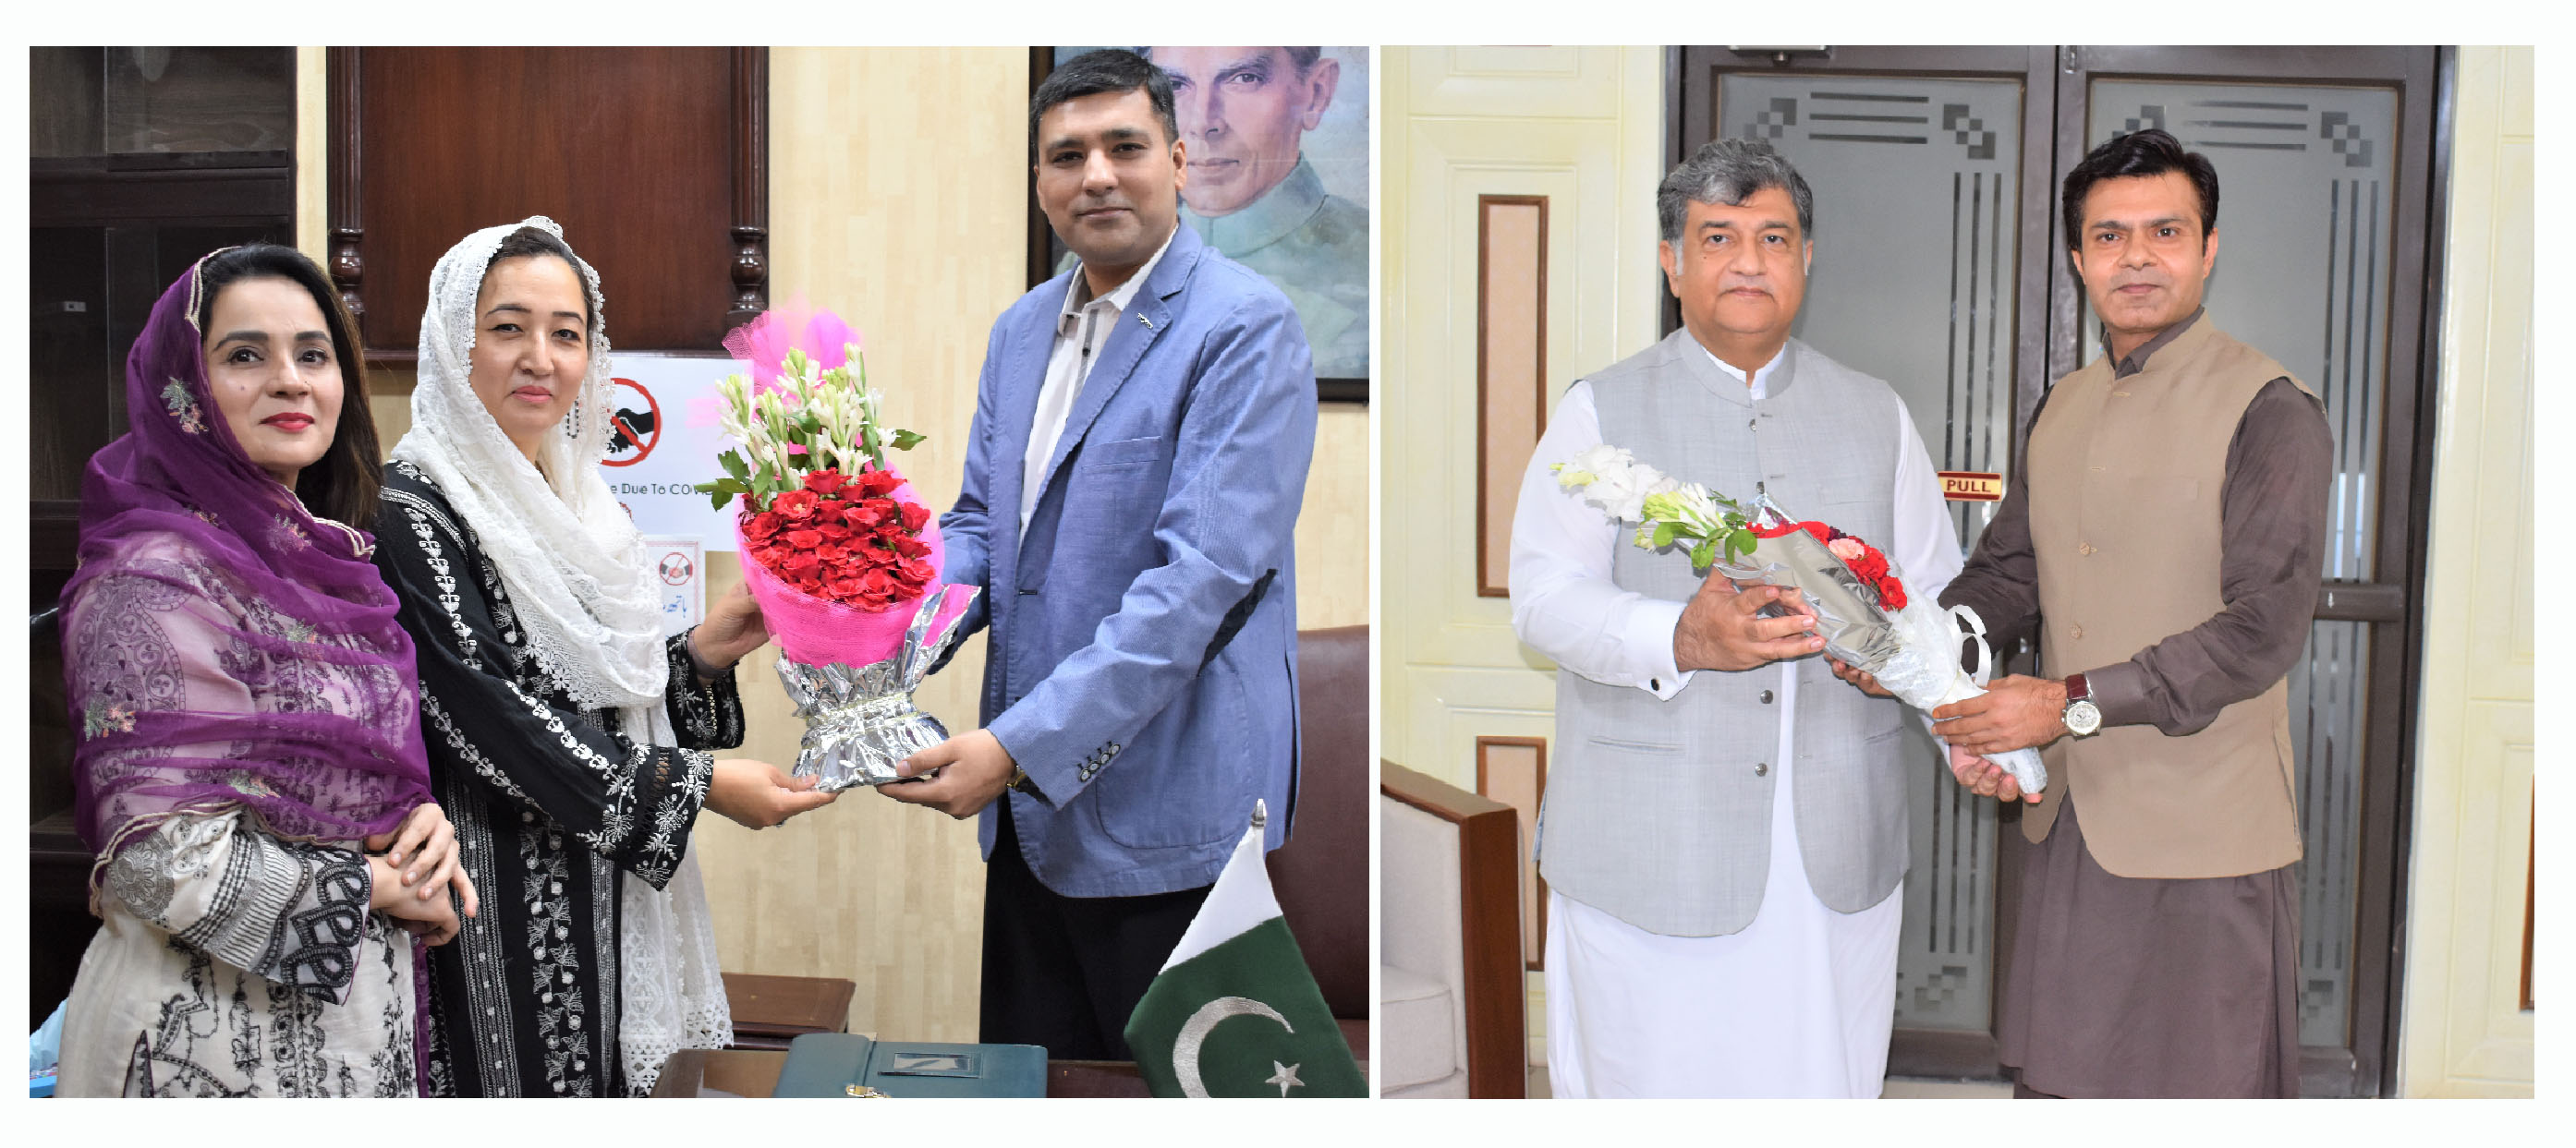 Mr. Tahir Mahmood, Director TEVTA, Dr. Maryam Nauman, President, WCCIS  extended heartiest felicitations to President, Senior Vice President, and Vice President, Sialkot Chamber of Commerce & Industry for assuming the charge as Office Bearers of SCCI.